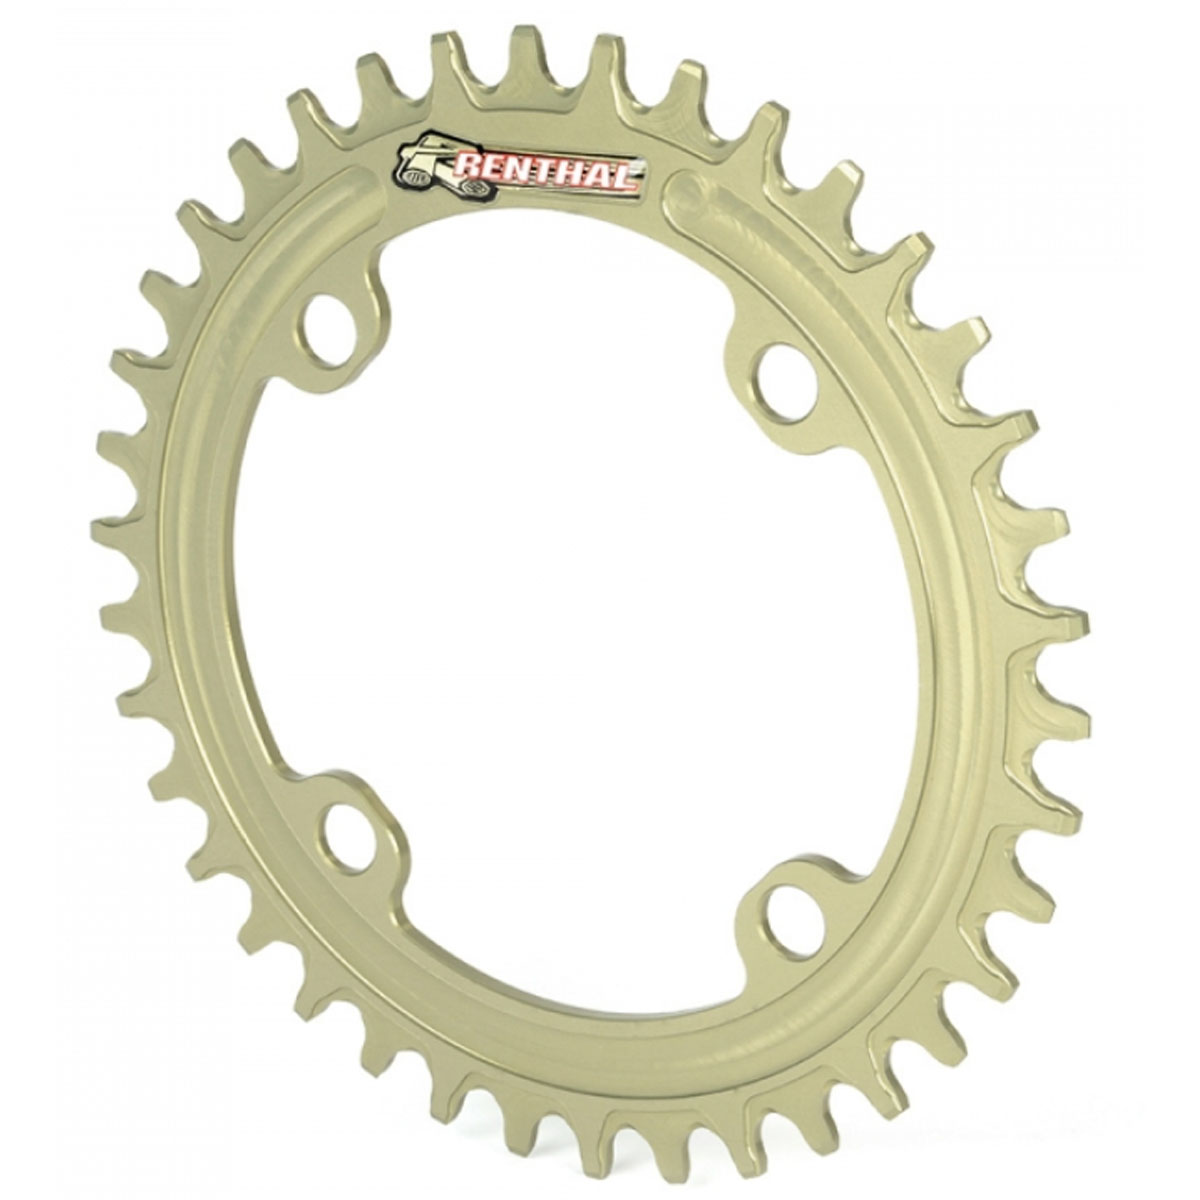 Renthal 1XR 104mm Retaining Aluminum Bicycle Chainring - 38T, 9-11sp, BCD: 104 - Gold - MCR107-564-38PHA